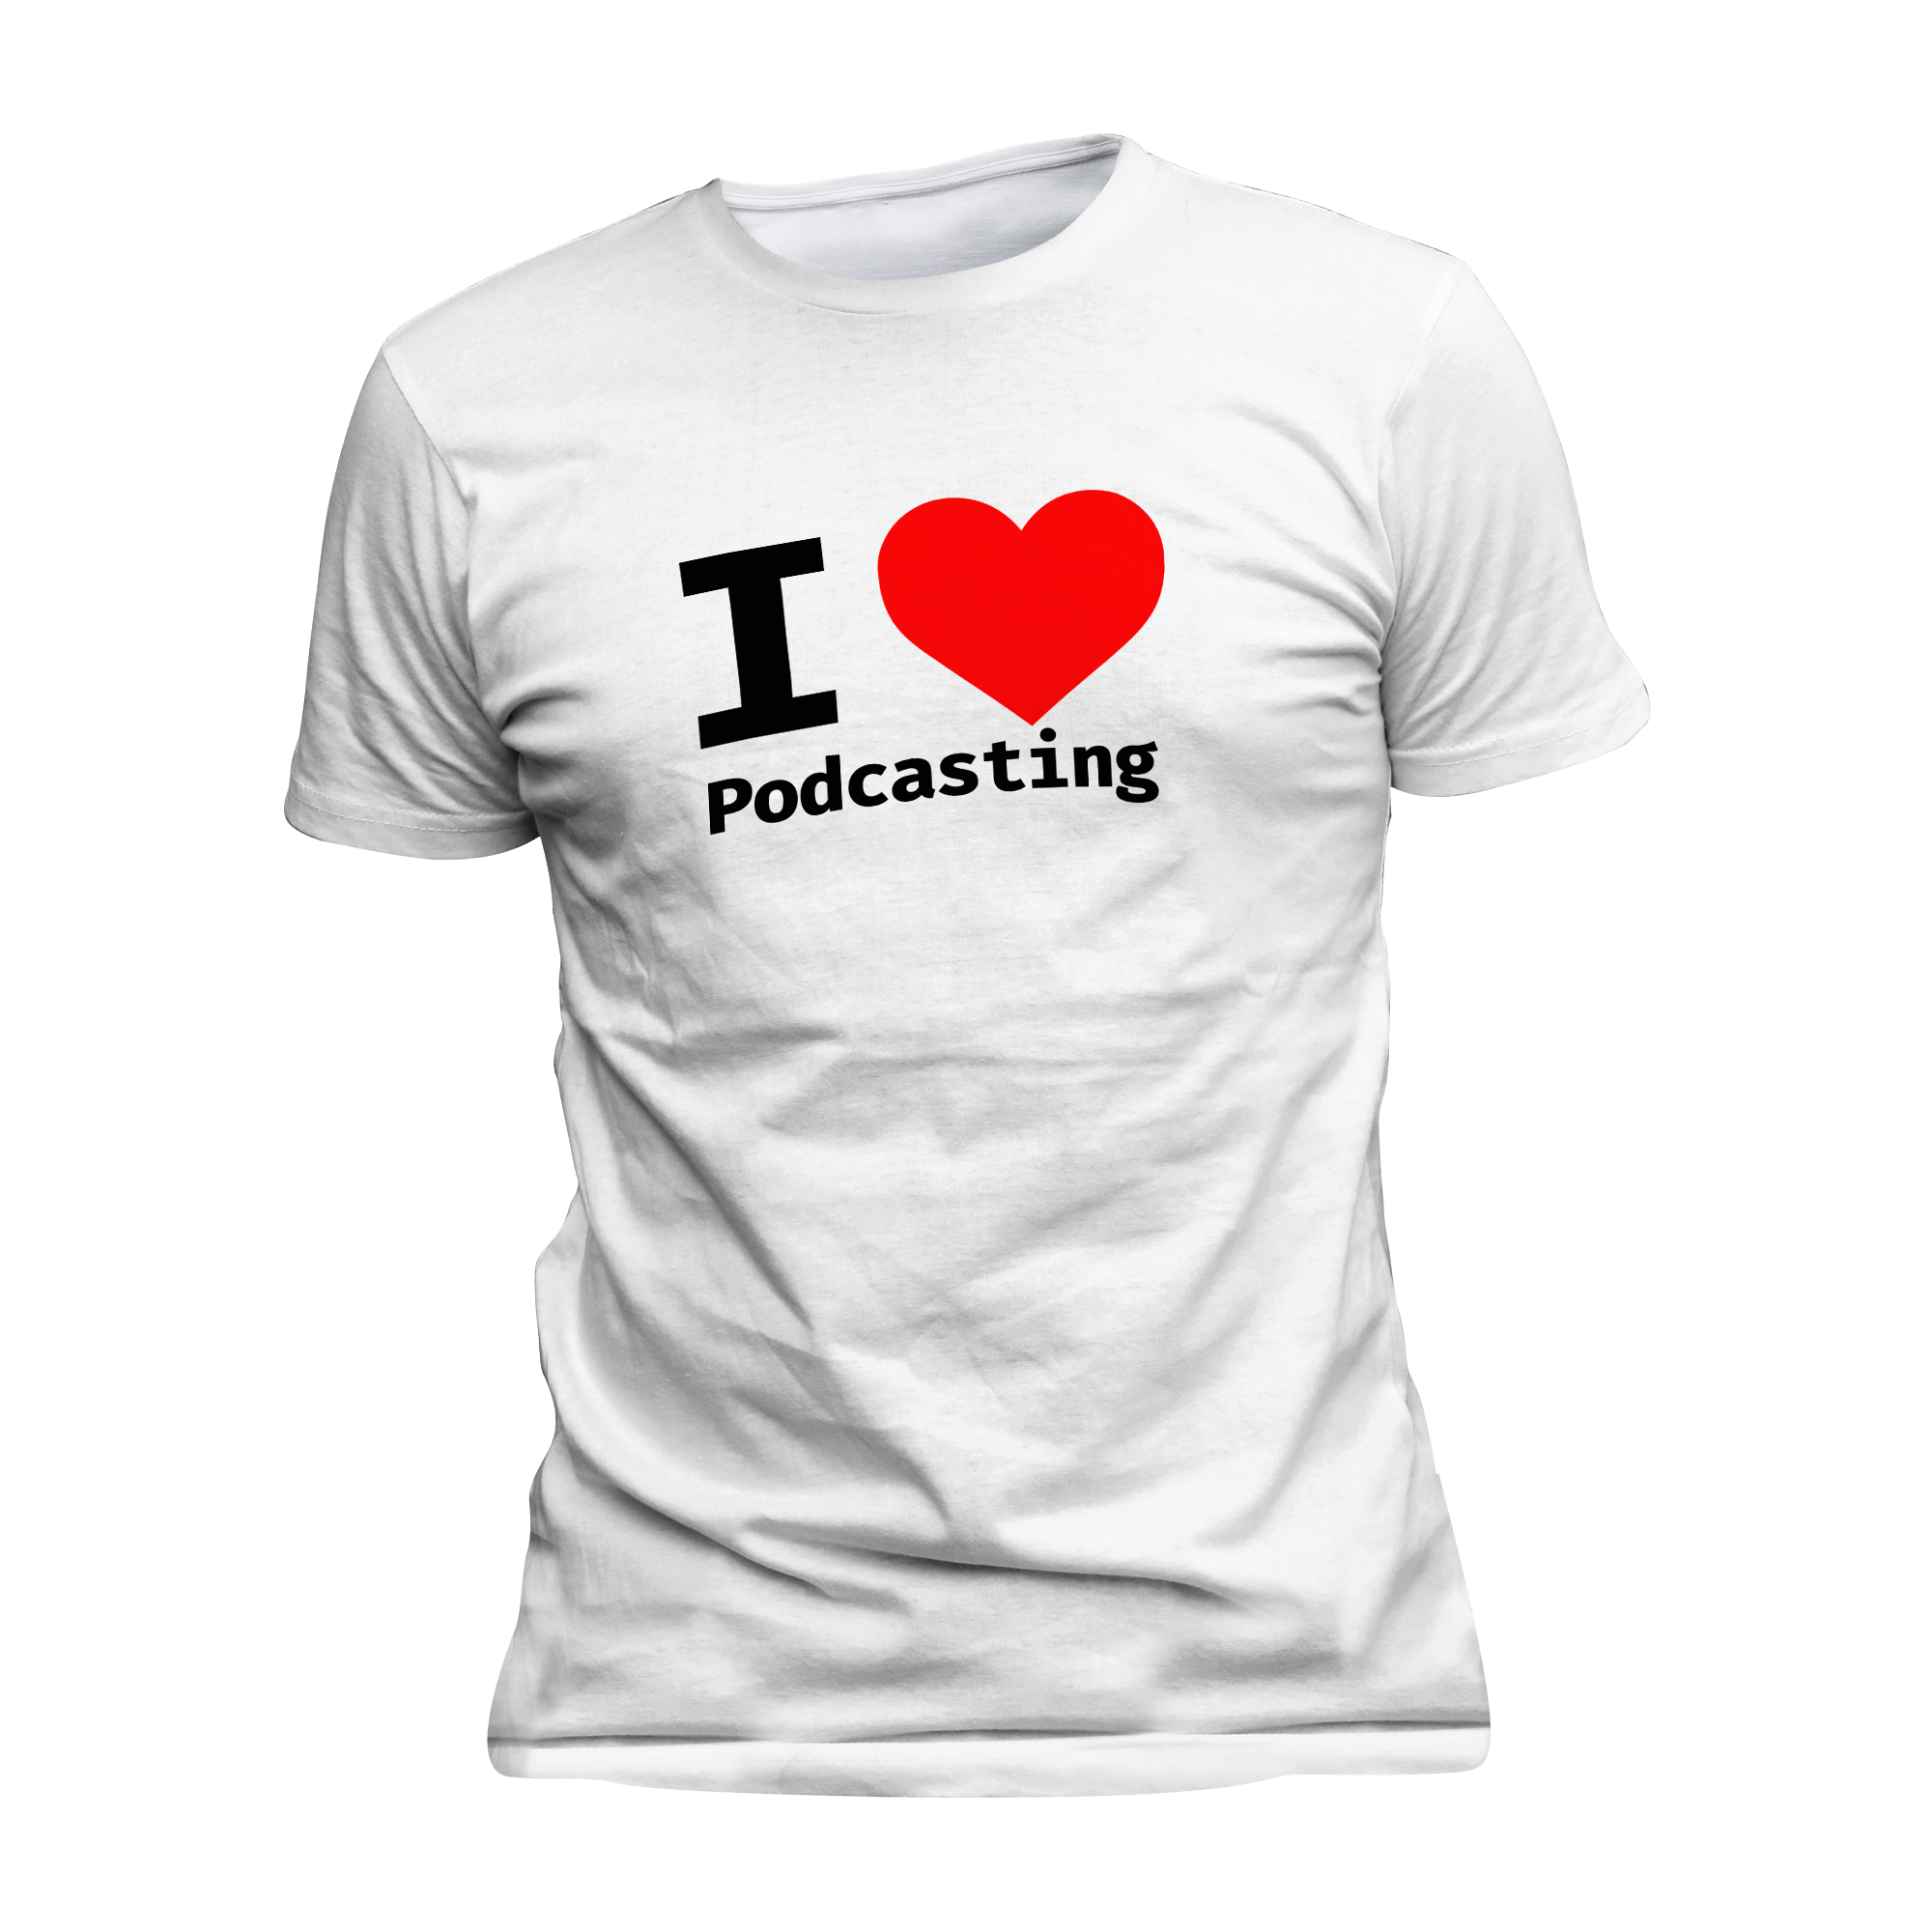 pp-tshirt-i-love-podcasting